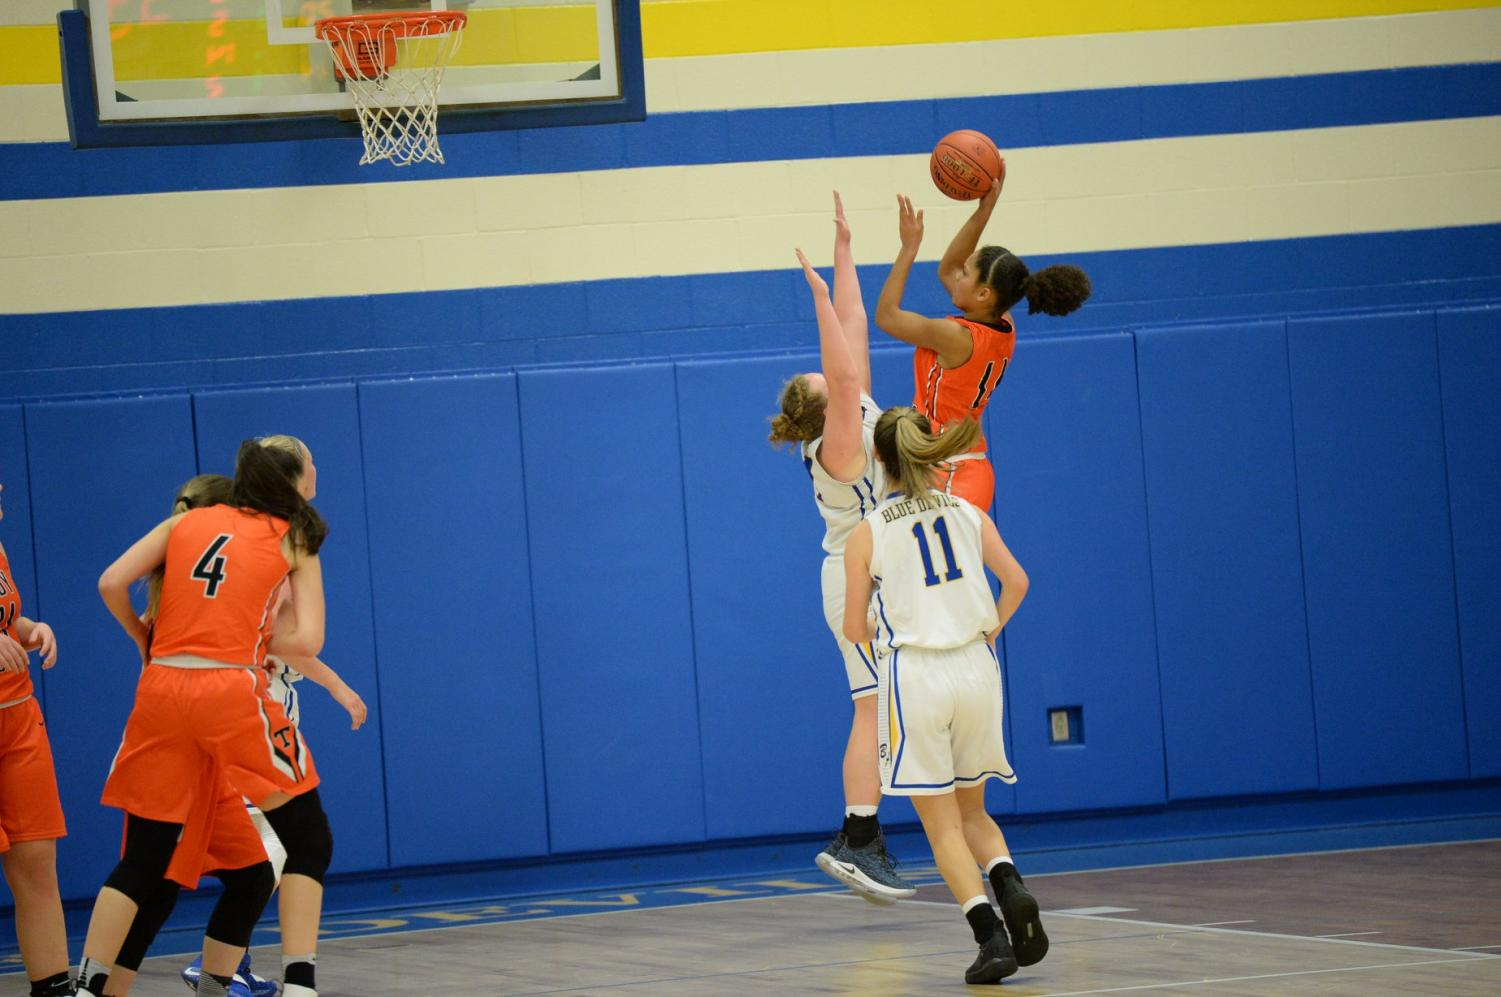 Freshman Jadia Parker led the Lady Eagles with 9 points and 12 rebounds in a close loss to Bellwood in the Kiwanis Tournament Championship game over Christmas break.